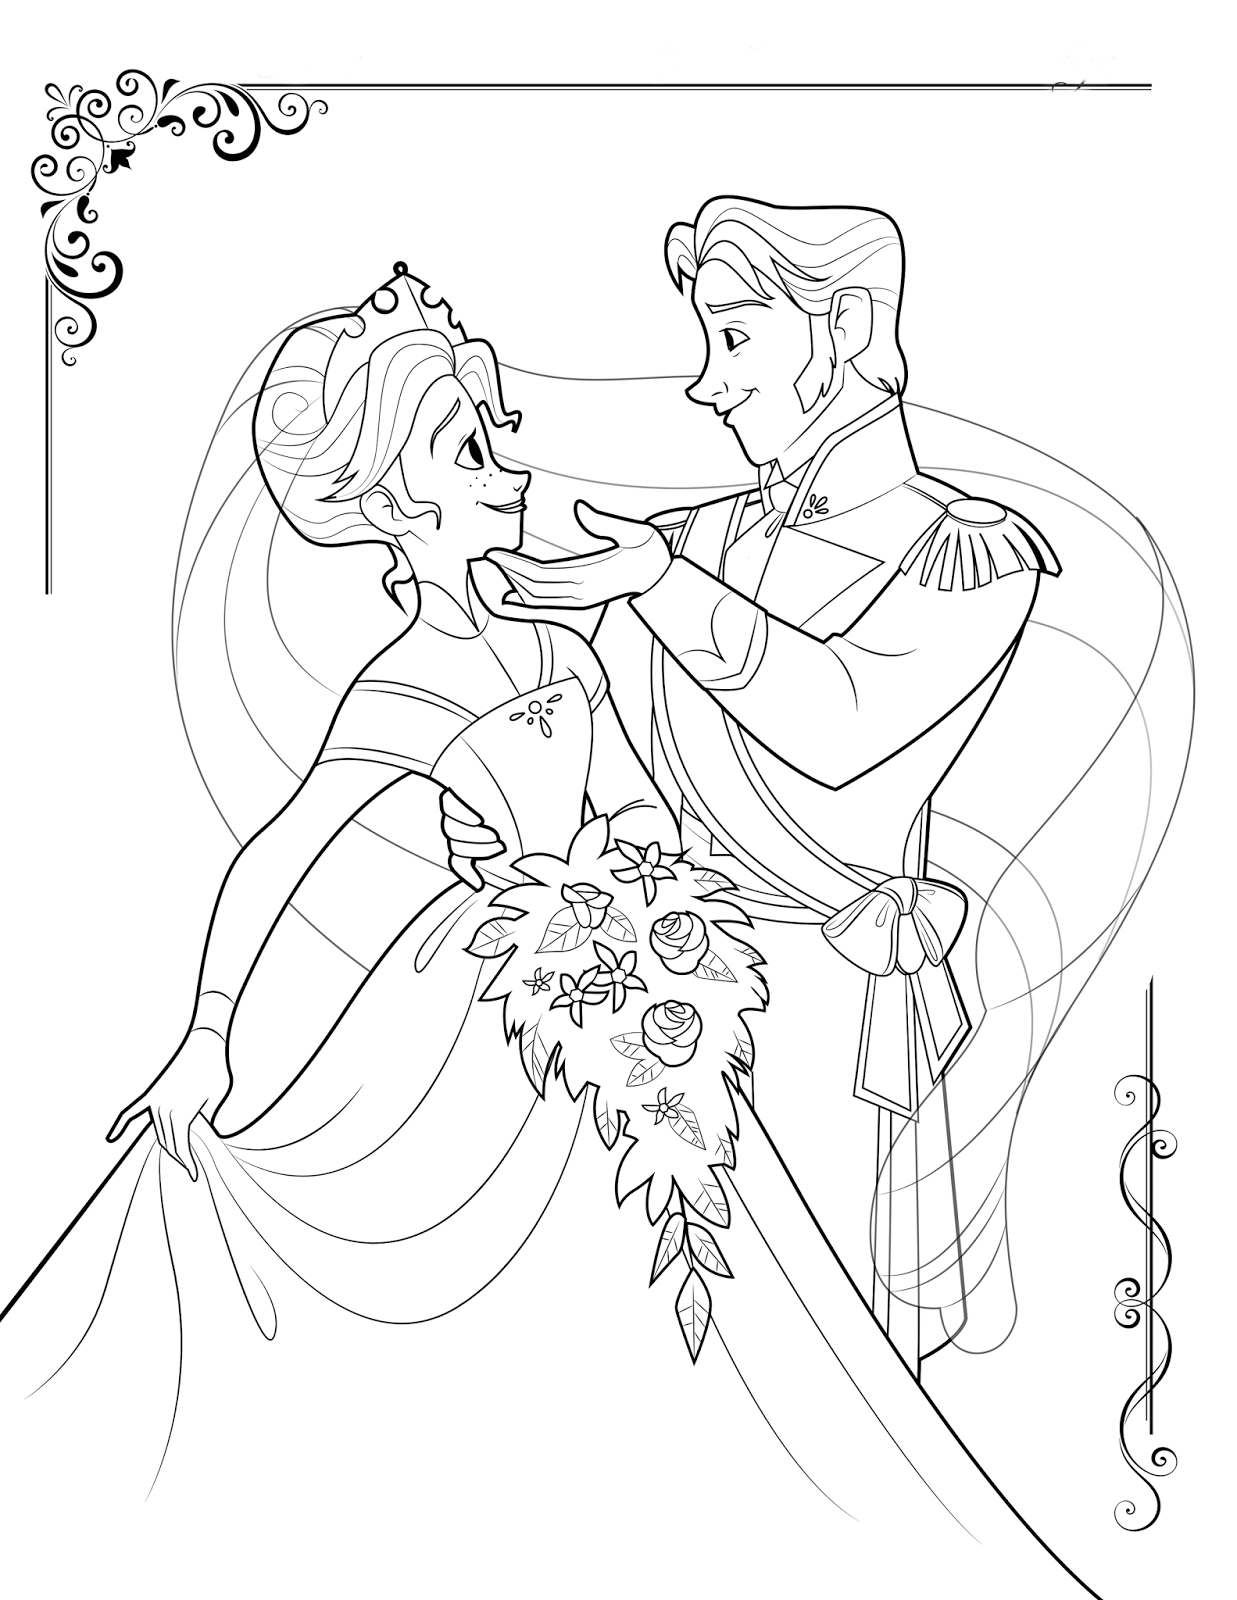 frozen free coloring pages free printable frozen coloring pages for kids best coloring frozen pages free